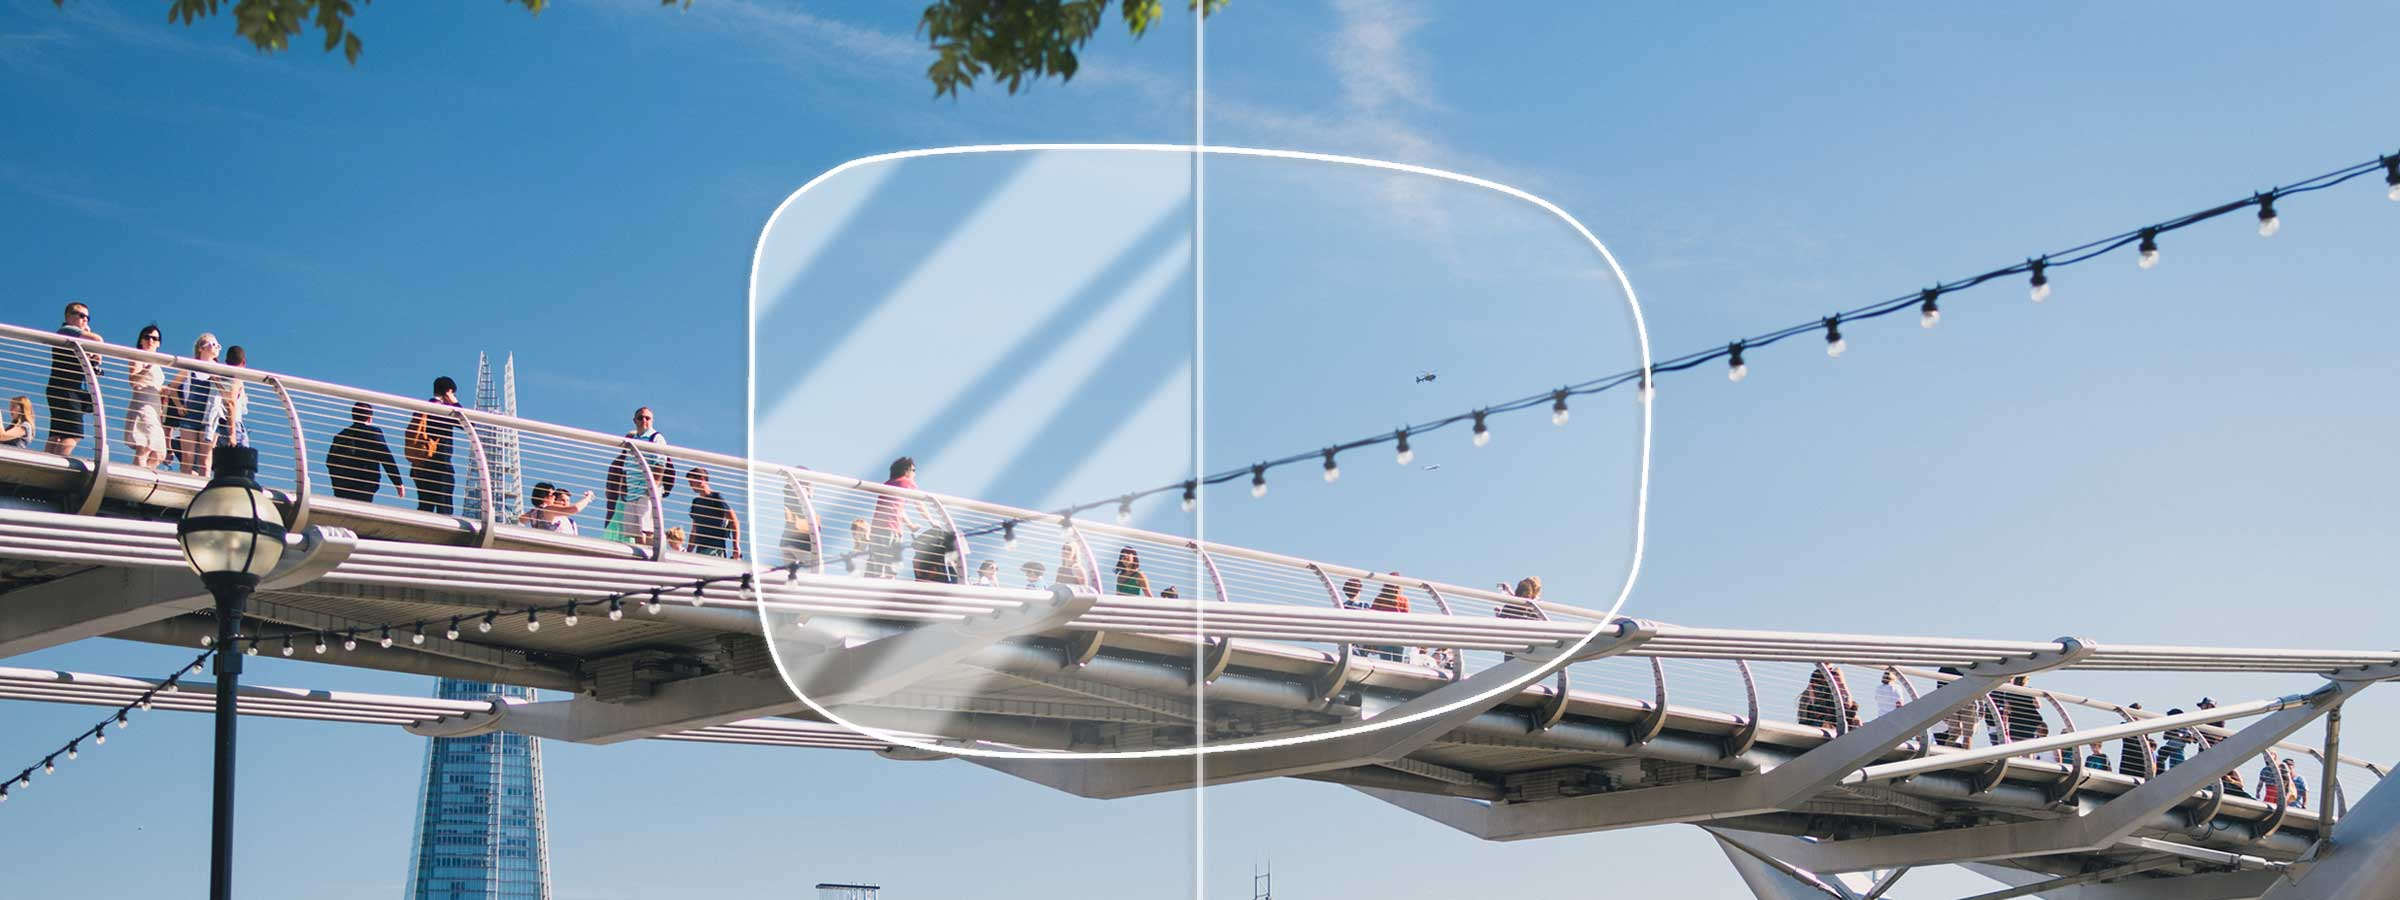 View of people on a bridge through a lens with and without an anti-reflection coating